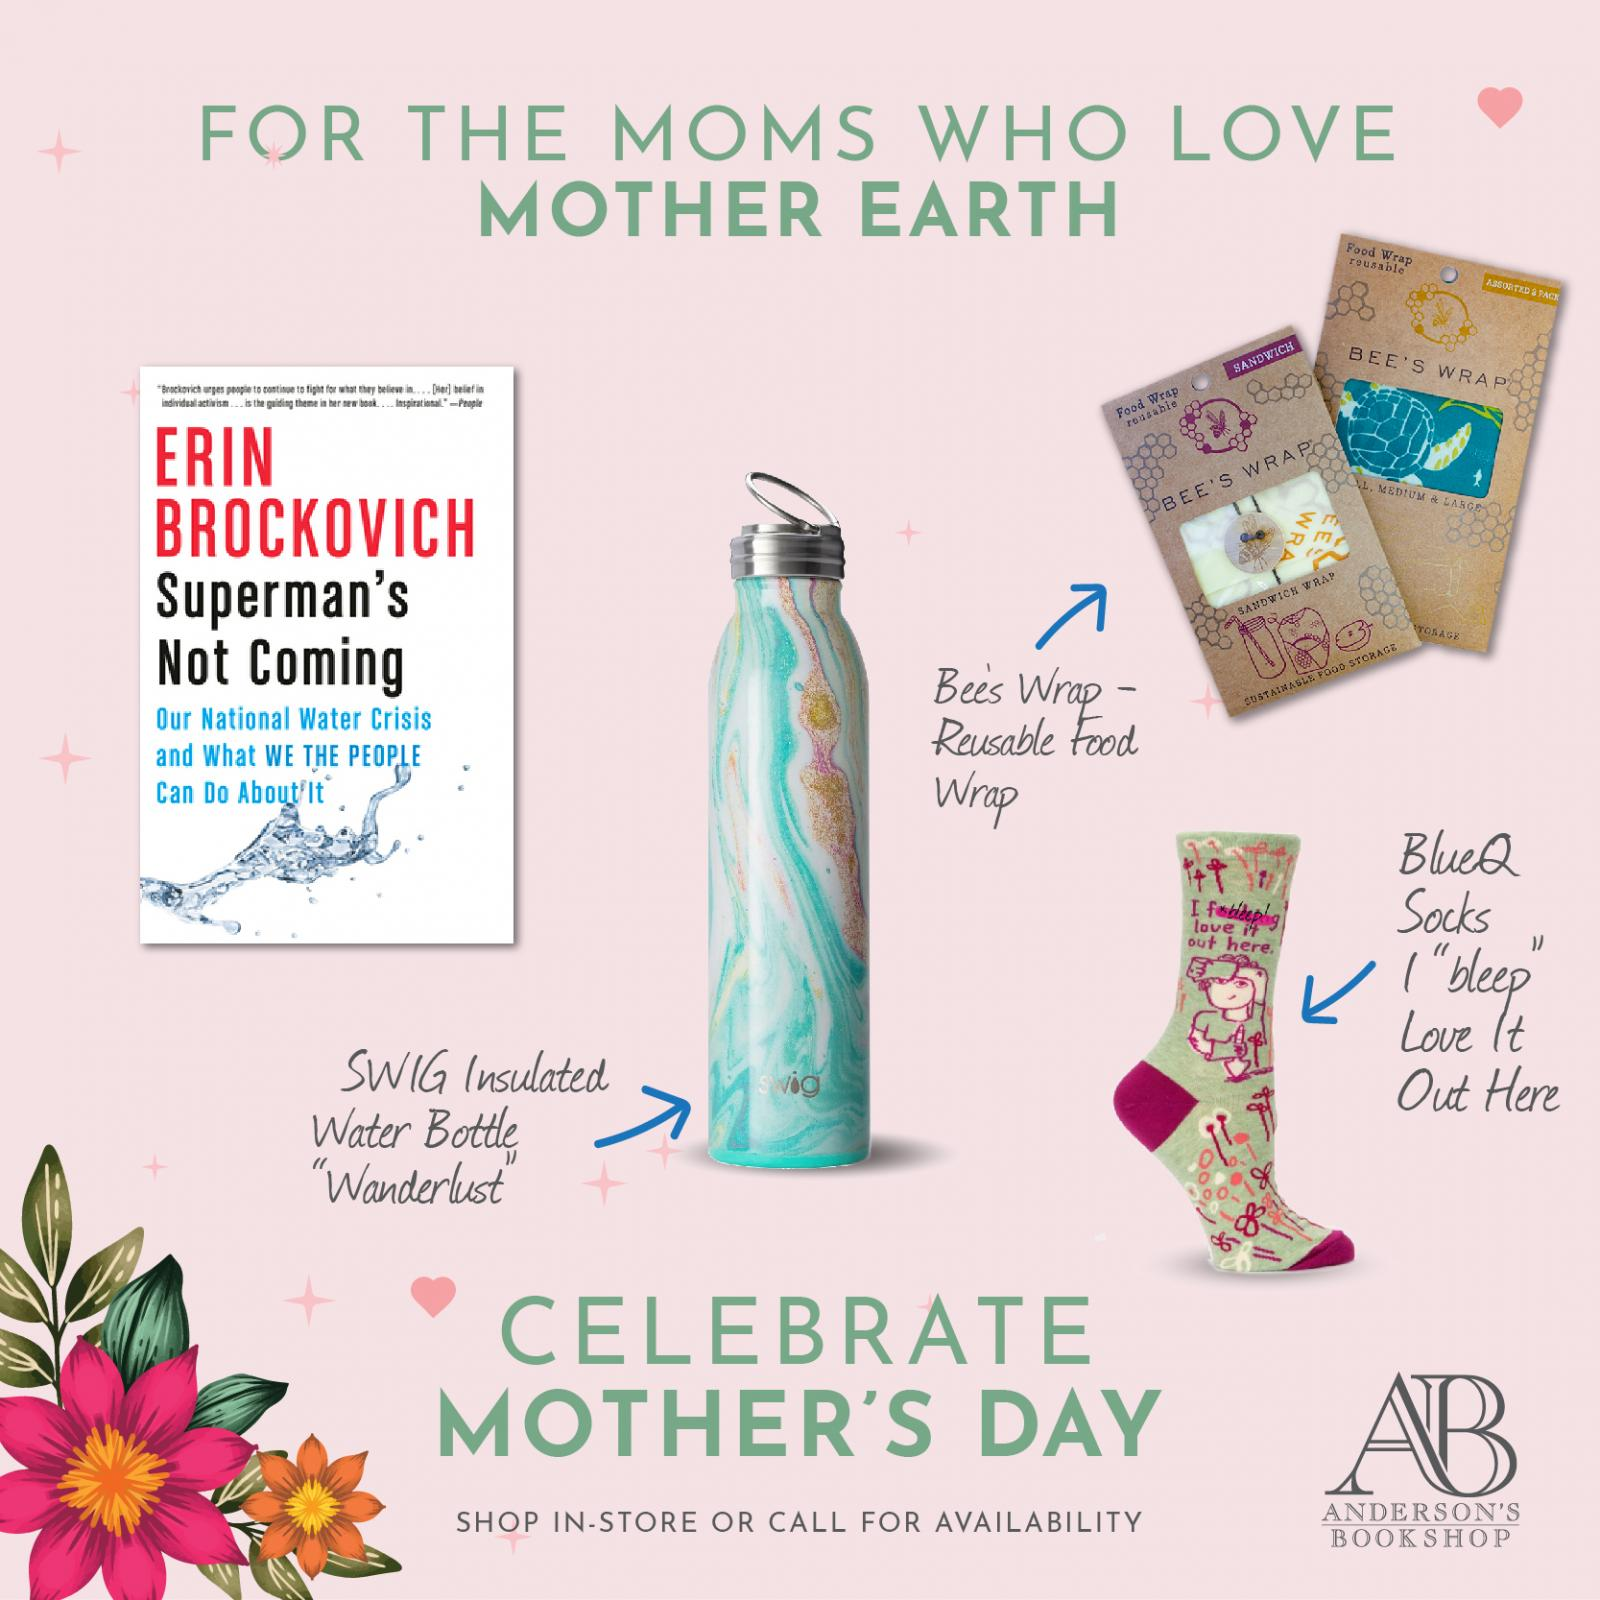 Mother's Day  - Mom's who love Mother Earth